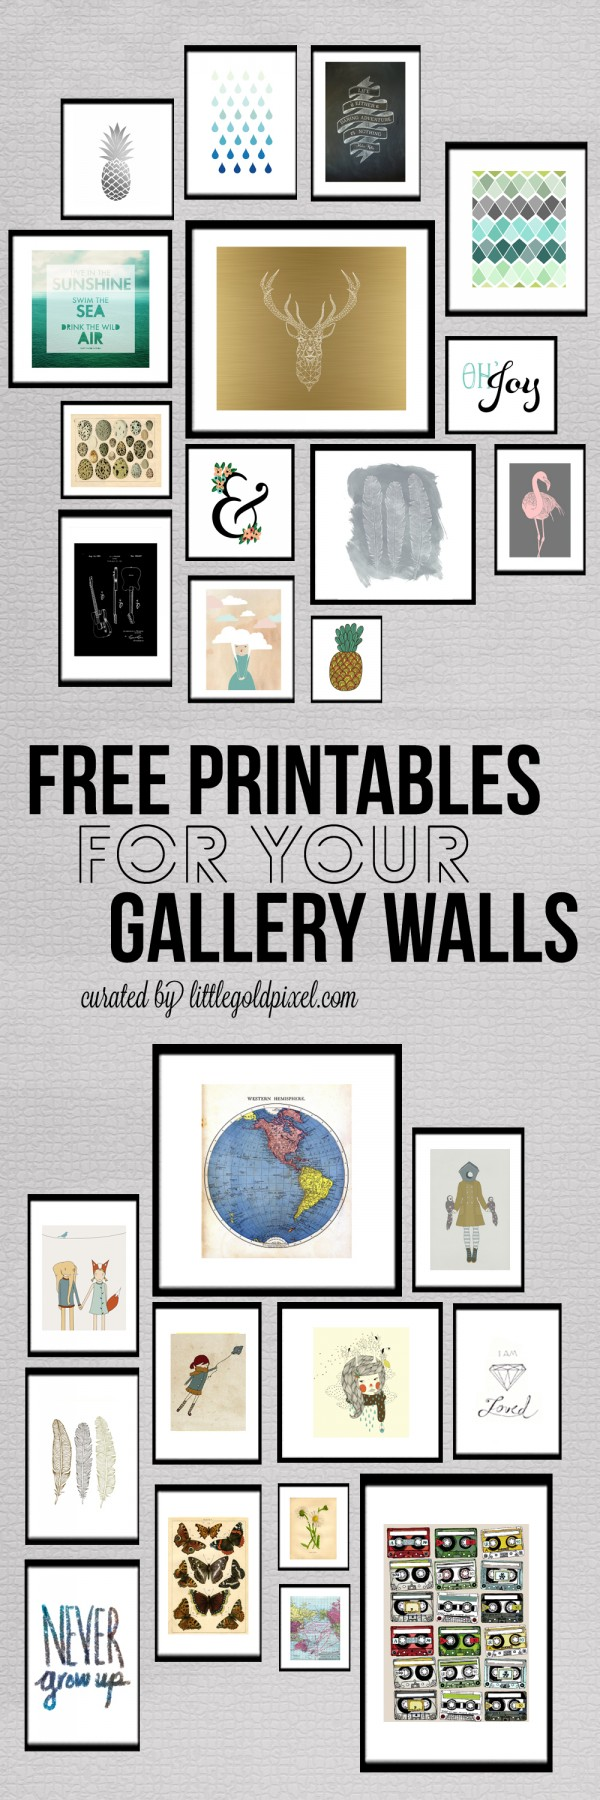 DIY Free Printables Wall Decor